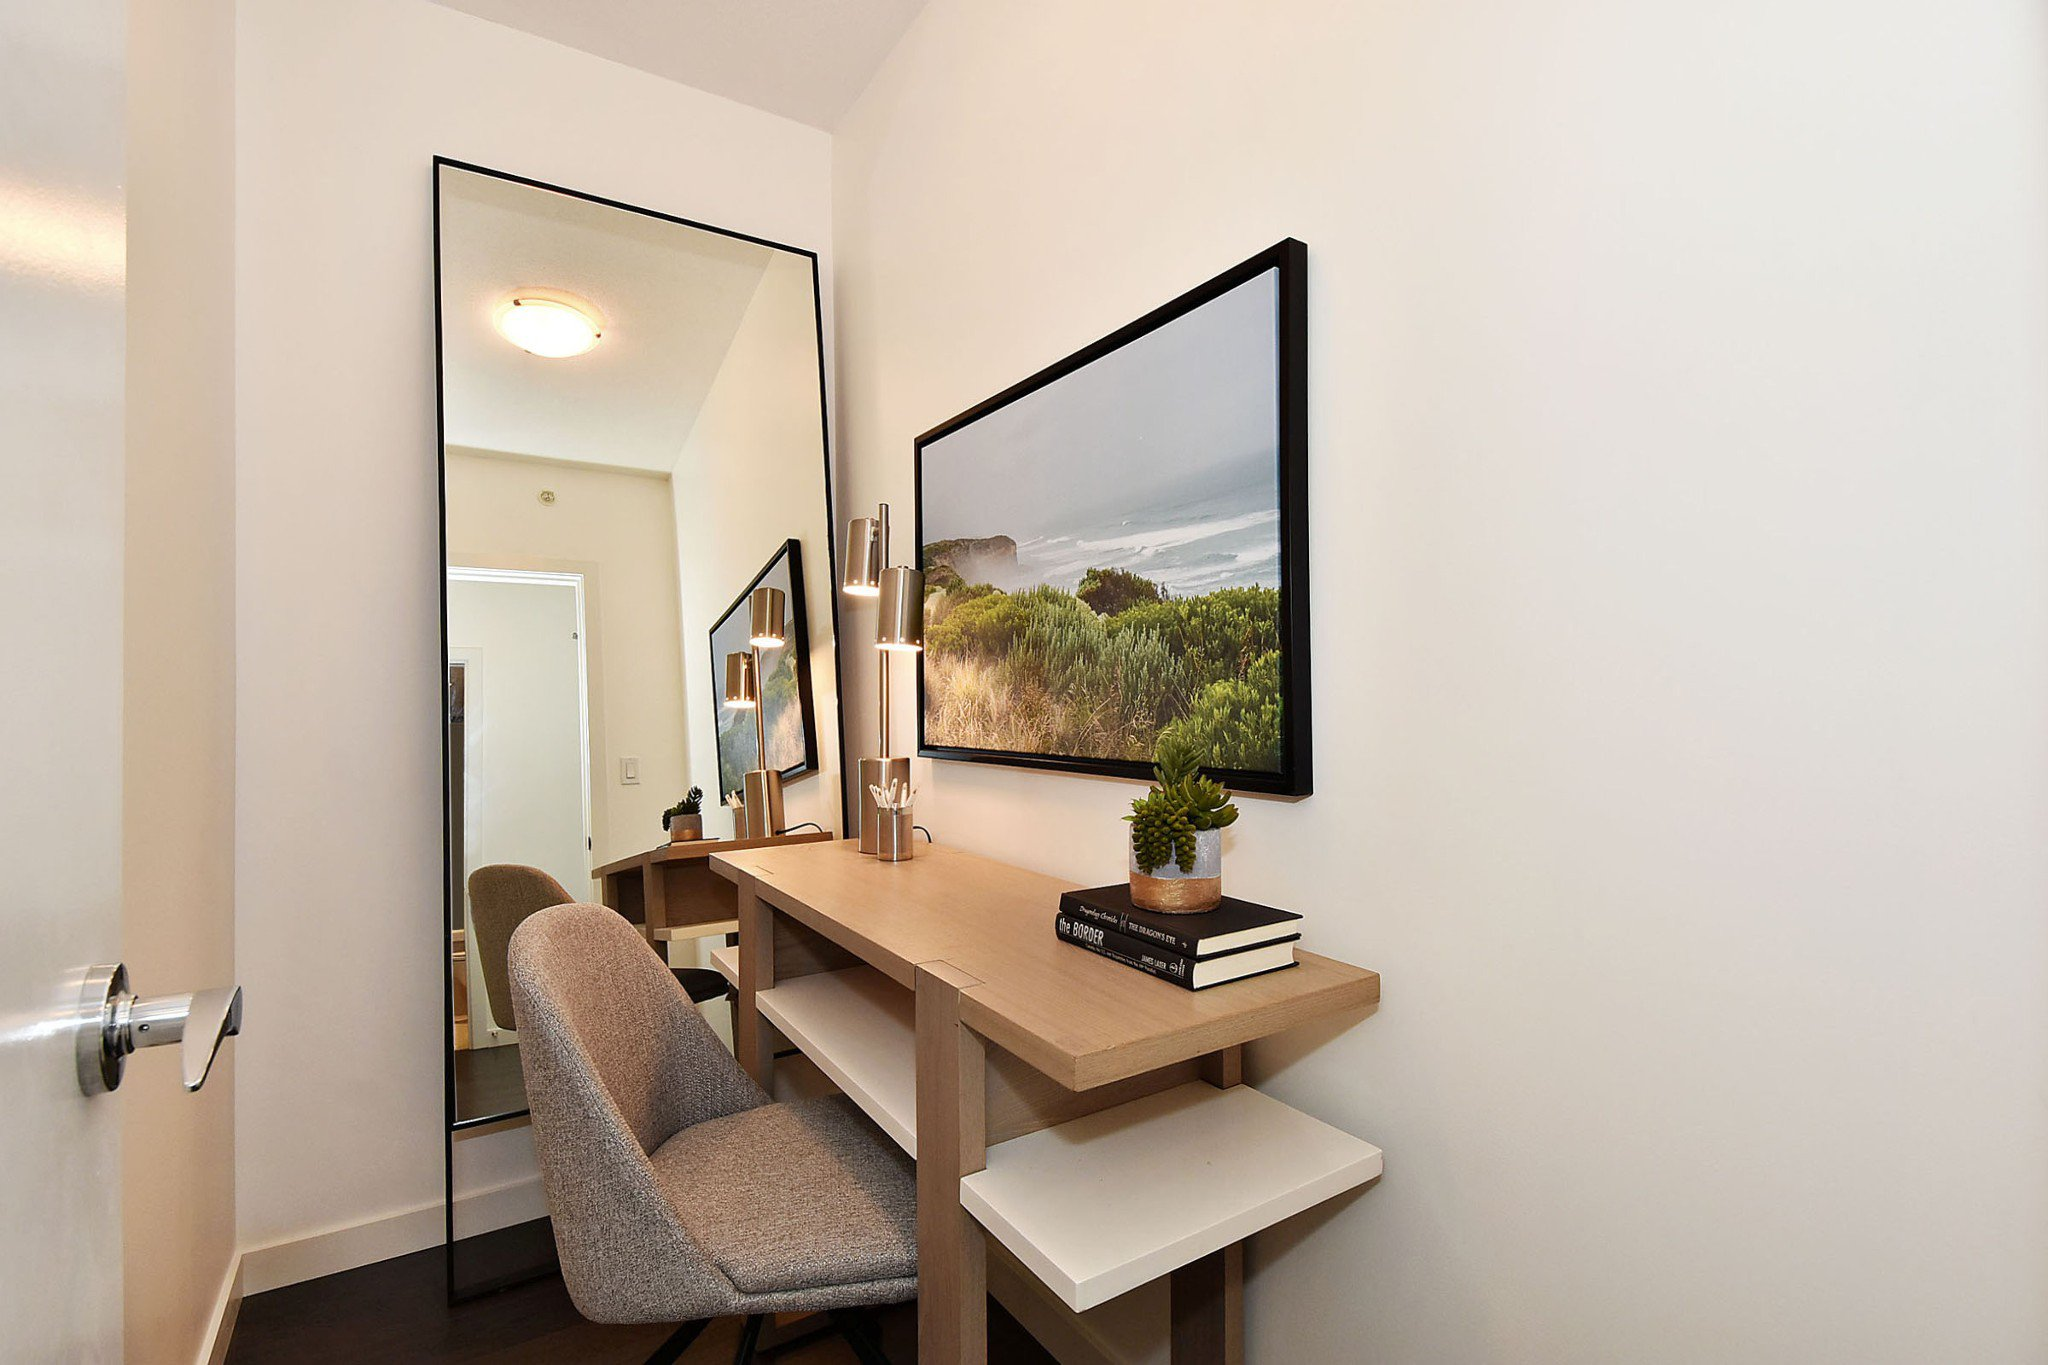 Photo 15: Photos: 306 138 W 1ST AVENUE in Vancouver: False Creek Condo for sale (Vancouver West)  : MLS®# R2360592